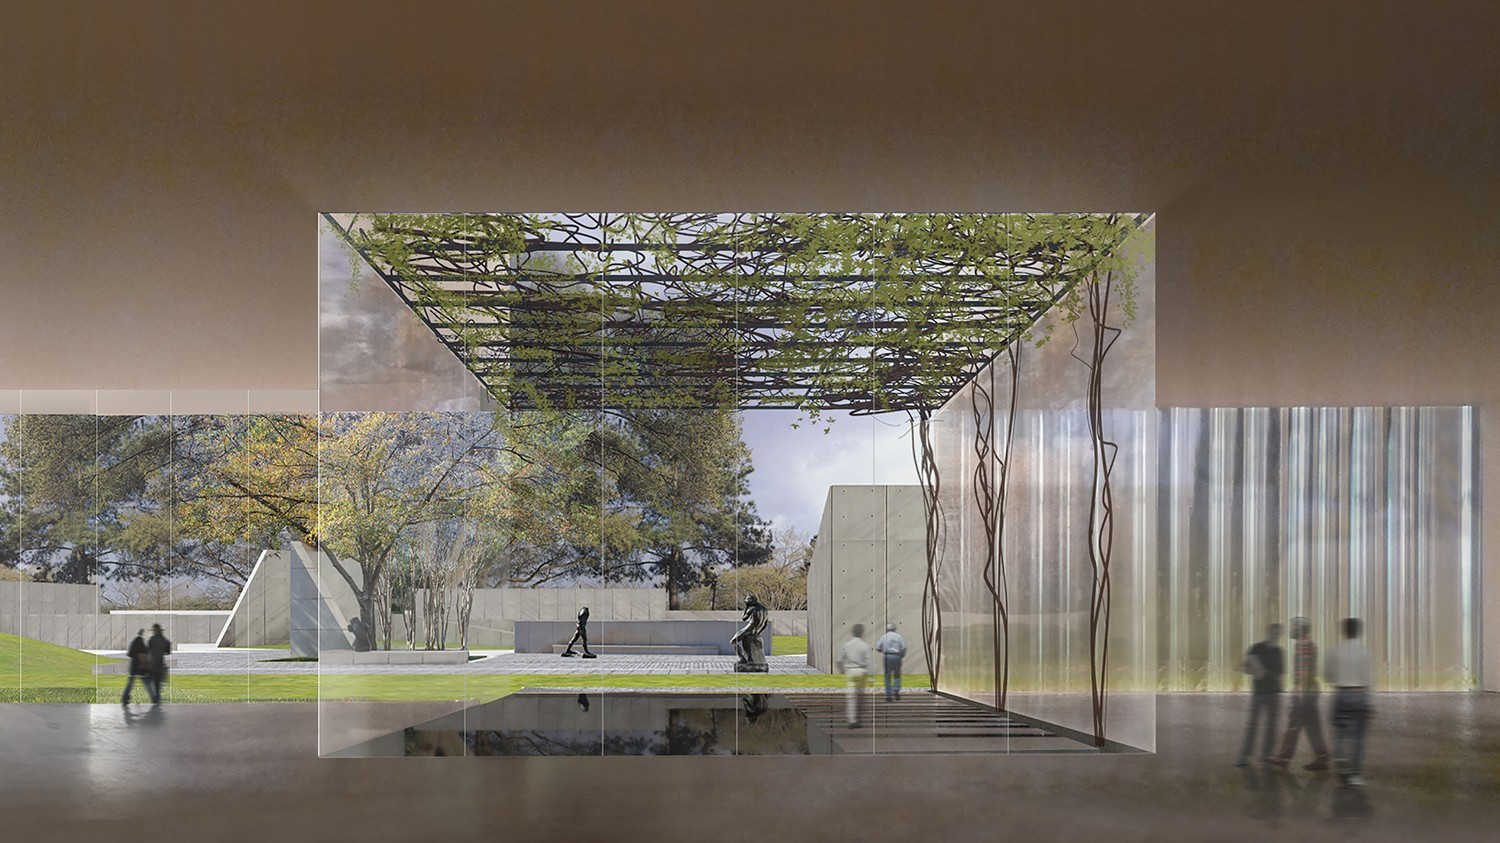 https://s3.us-east-2.amazonaws.com/steven-holl/uploads/projects/project-images/StevenHollArchitects_MFAH_SHA_19_courtyard view towards noguchi_option1_WH.jpg